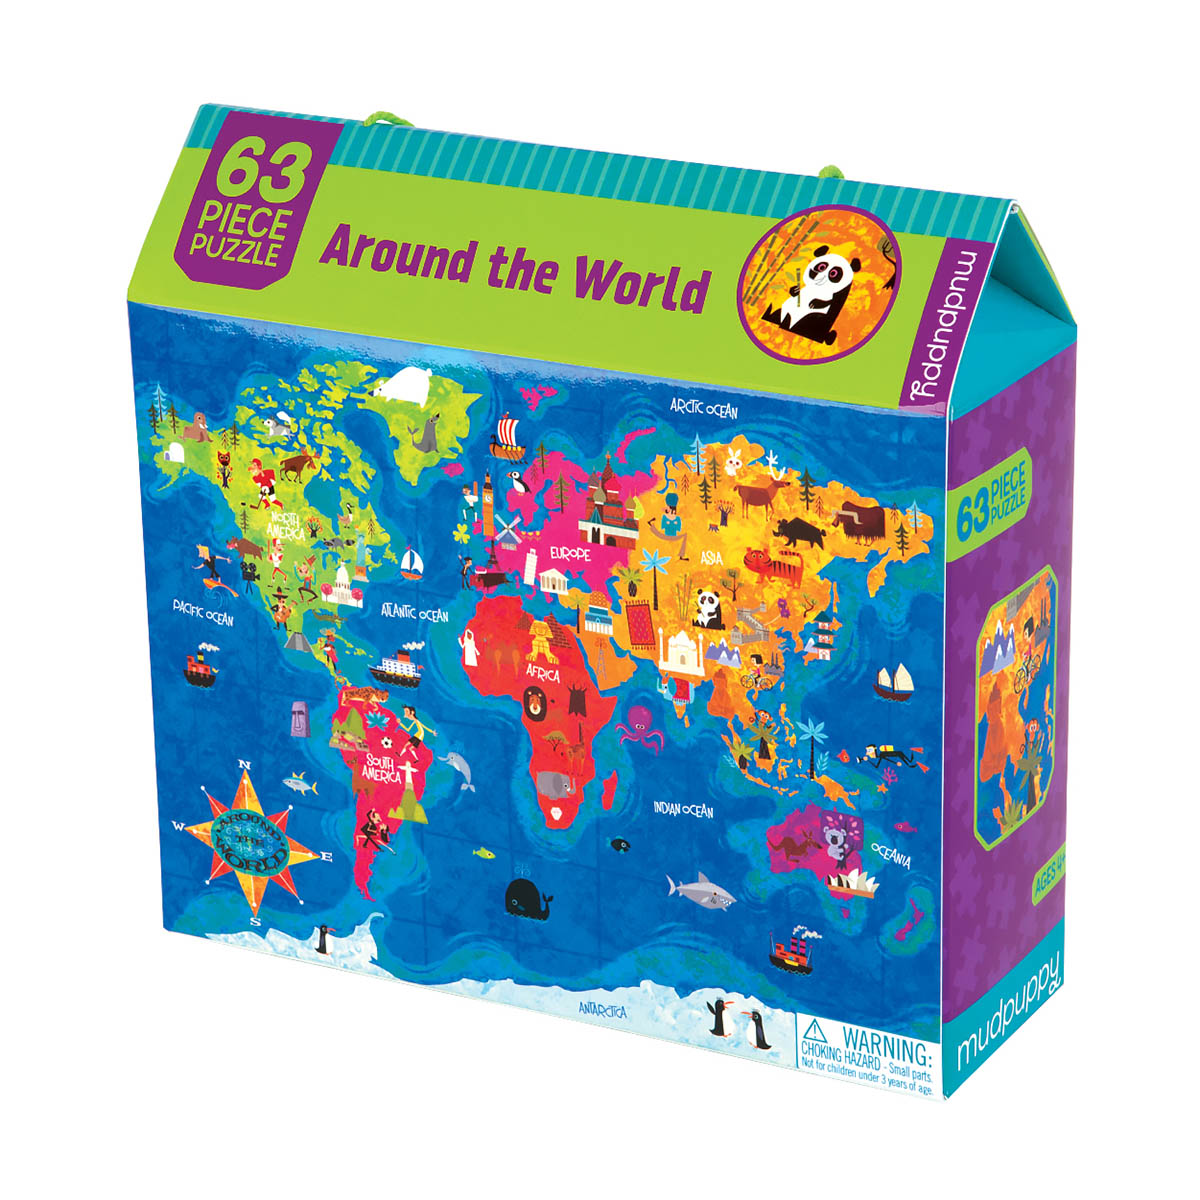 Around the World 63 Piece Puzzle - Scratch and Dent Educational Jigsaw Puzzle